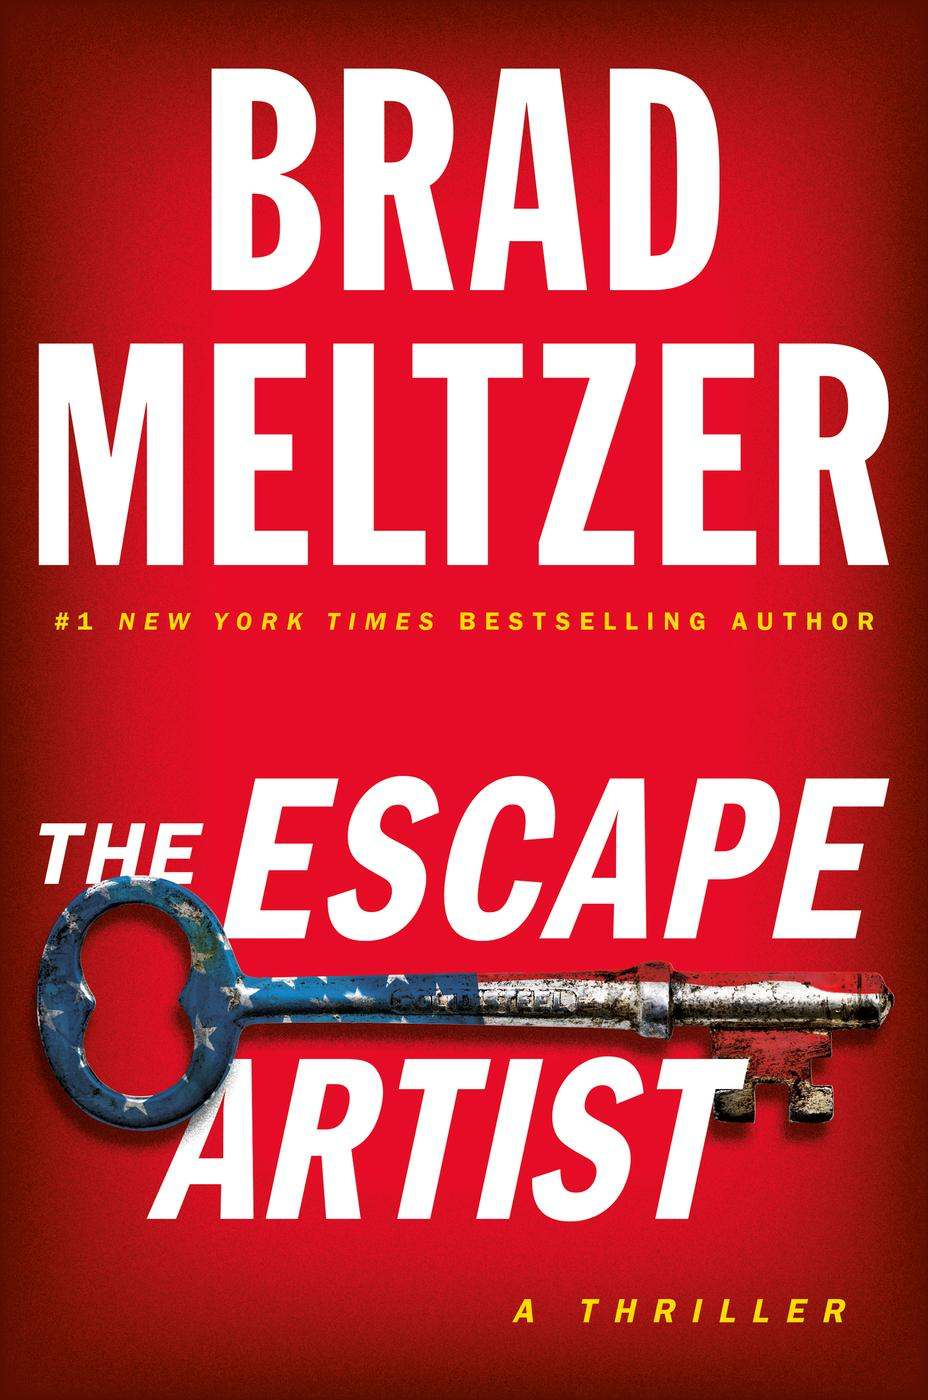 The Escape Artist - Brad Meltzer [kindle] [mobi]